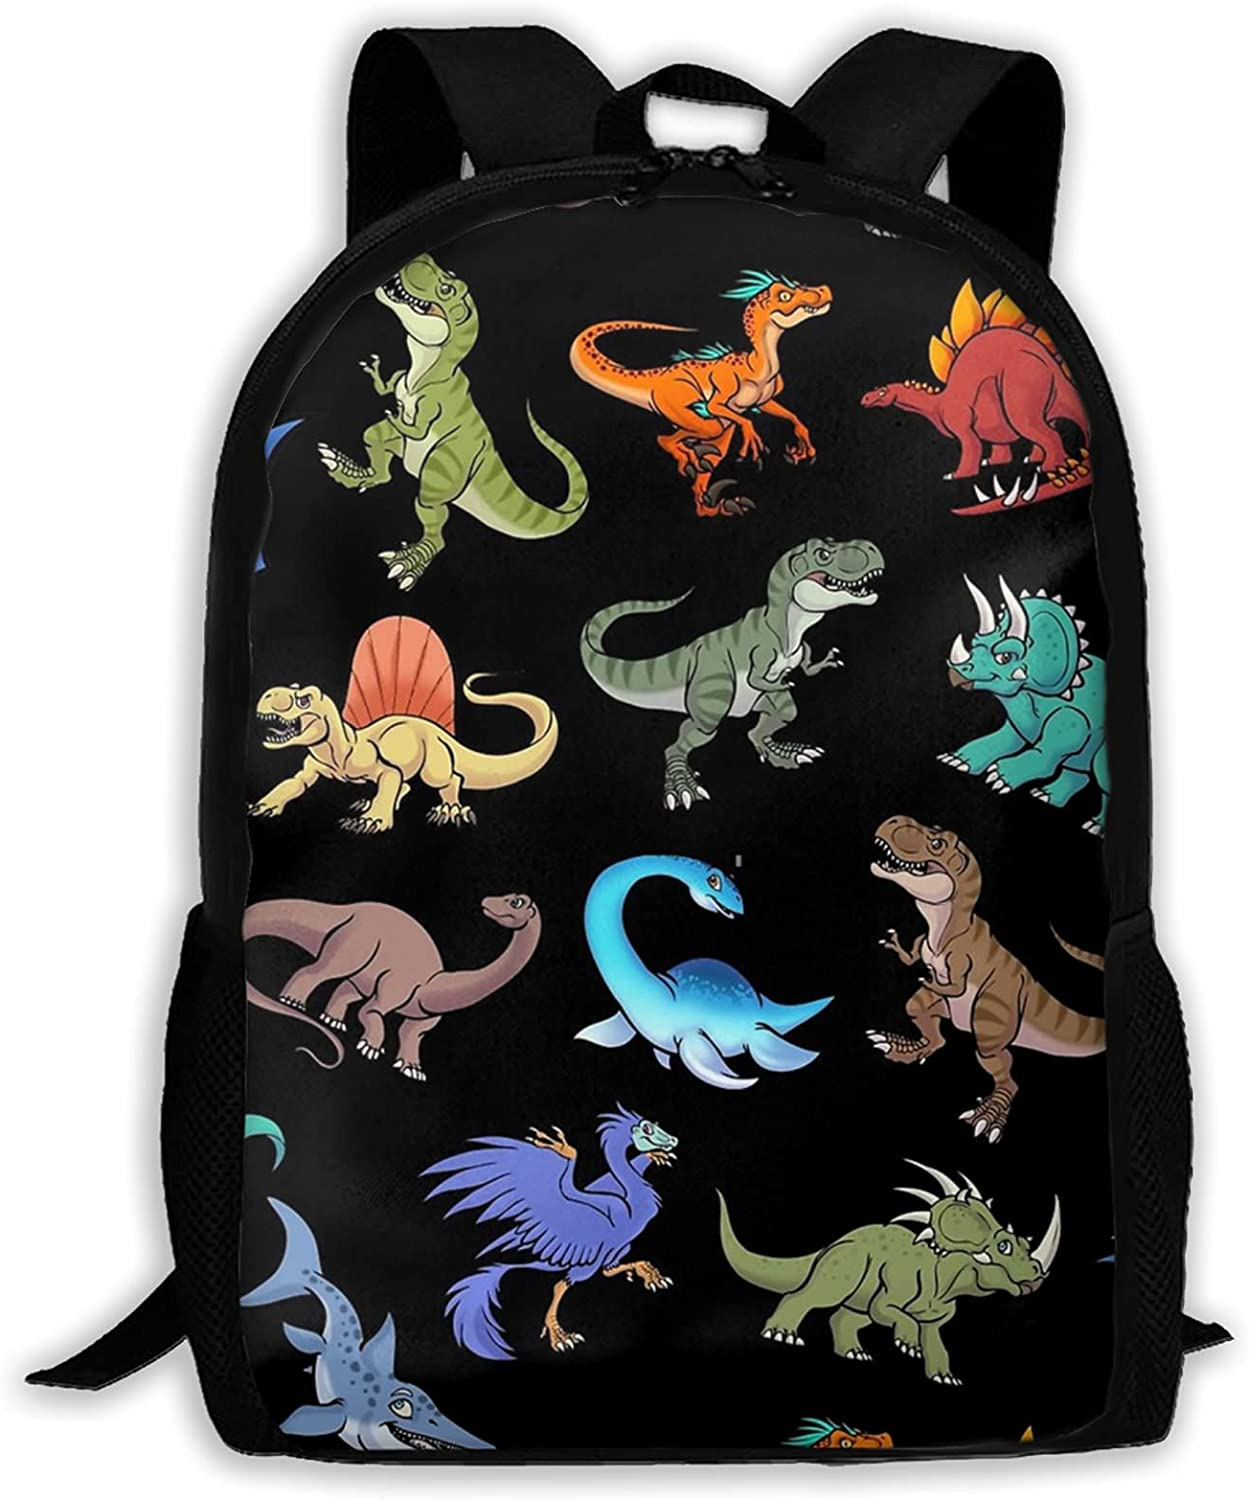 Dinosaur Printed Backpack Teen Boys Laptop And 17 Our shop OFFers the best service 5% OFF Girls